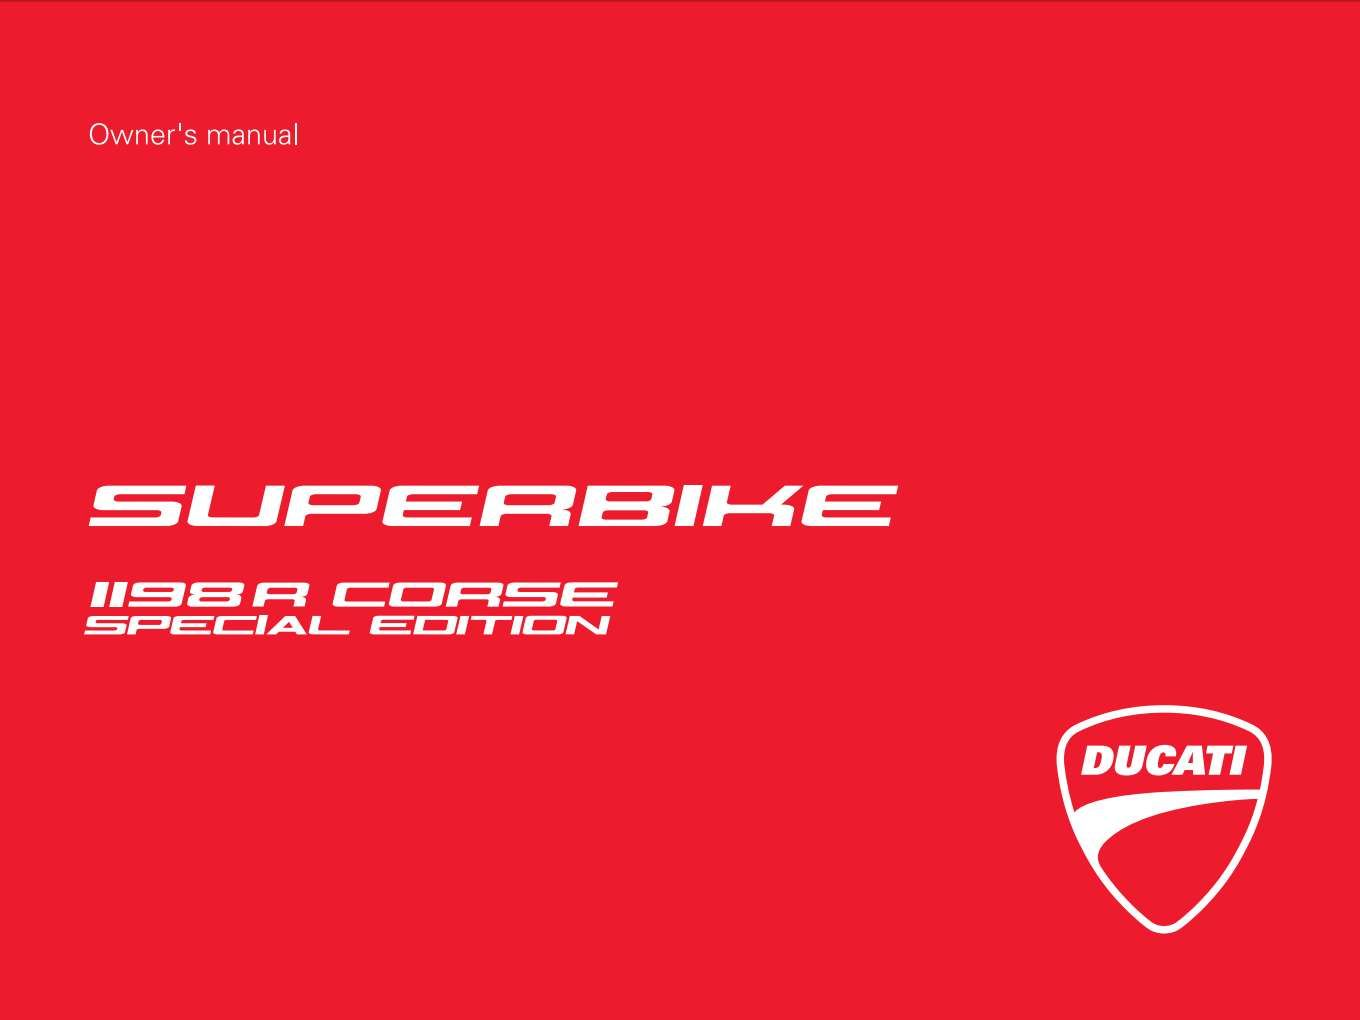 Ducati Sbk1198r Corse 2010 Owner S Manual Has Been Published On Procarmanuals Com Https Procarmanuals Com Ducati Sbk1198r Corse 2 Owners Manuals Corse Ducati